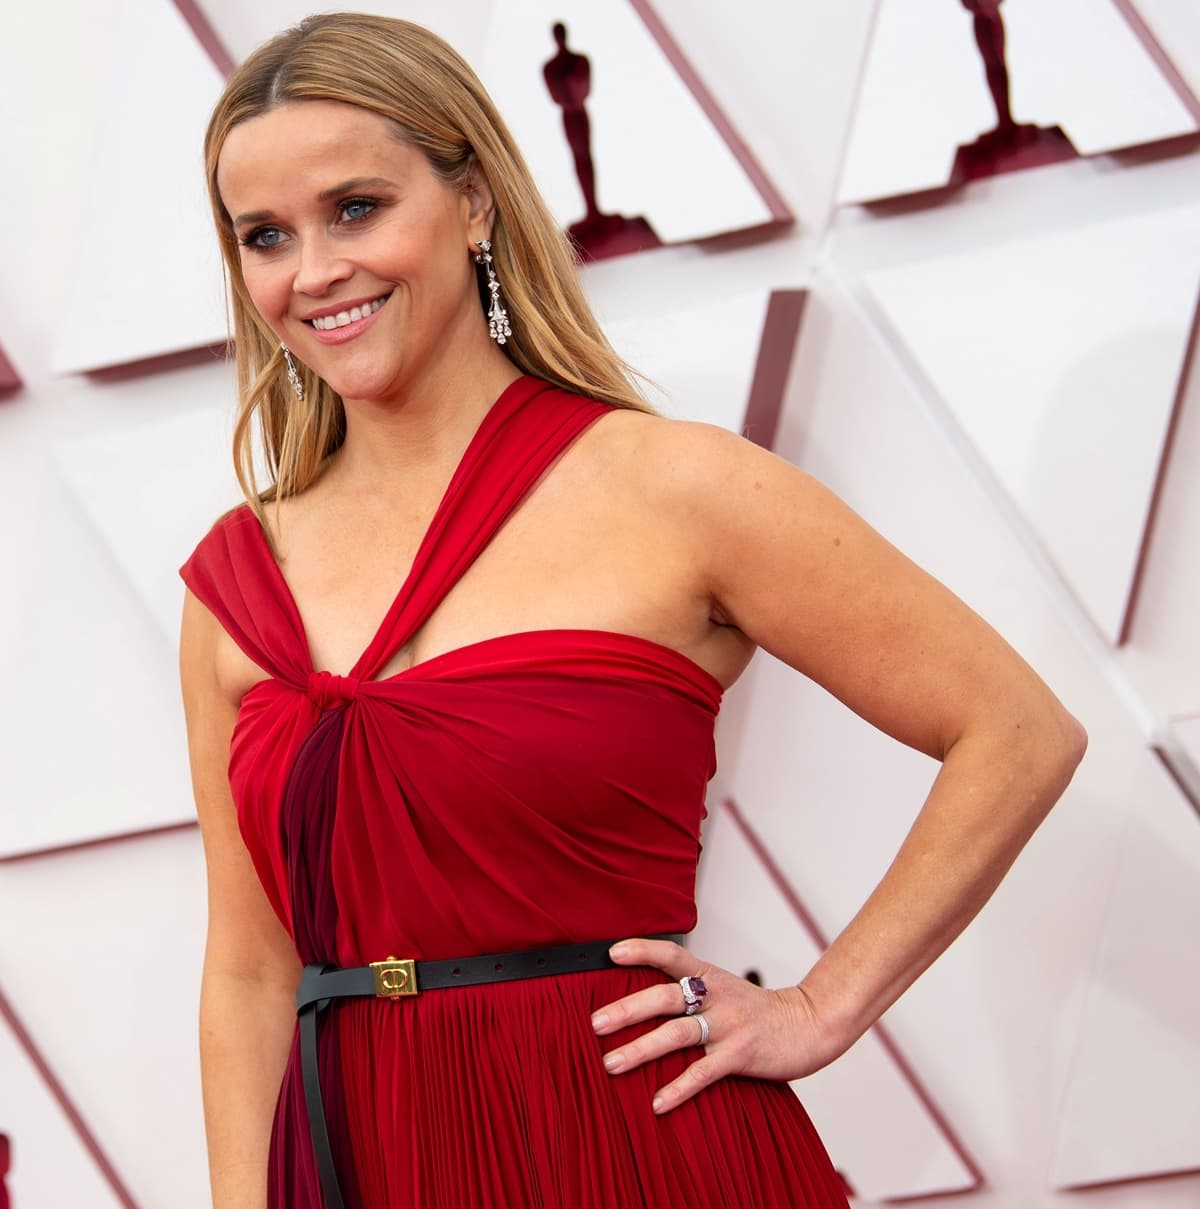 Reese Witherspoon in a deep red Christian Dior halter-neck dress at the awards show